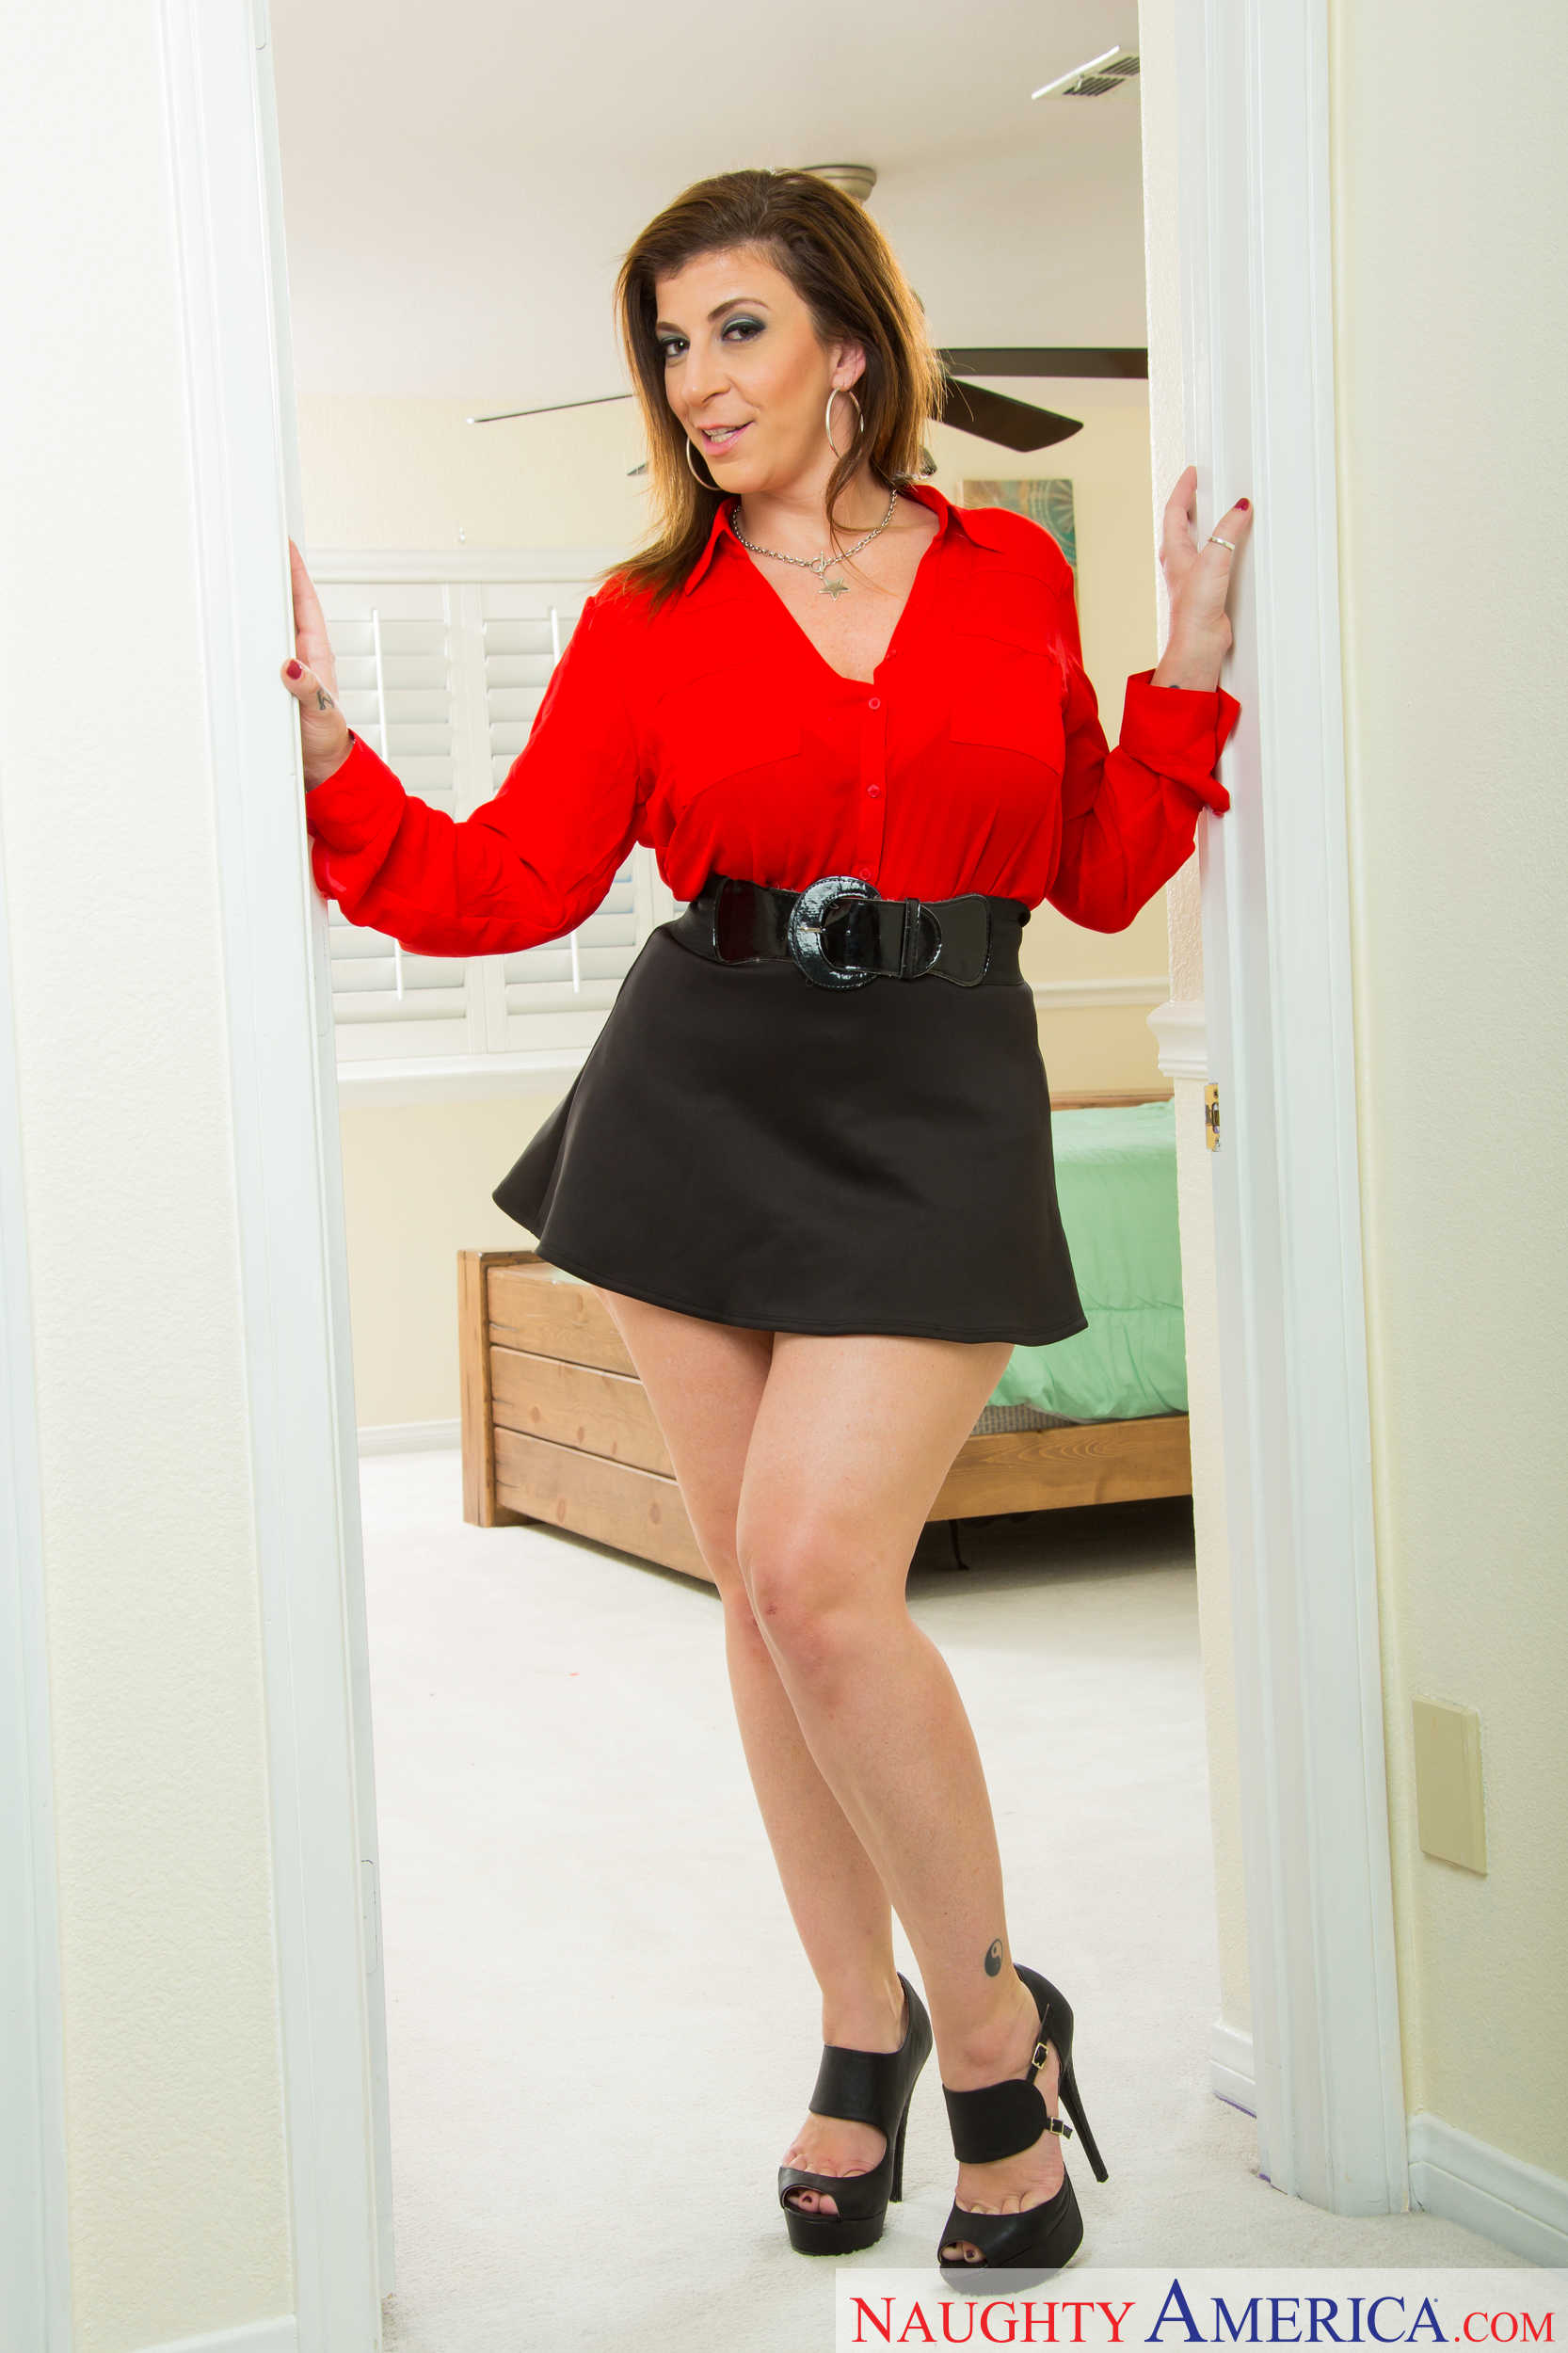 Hot mom short skirt